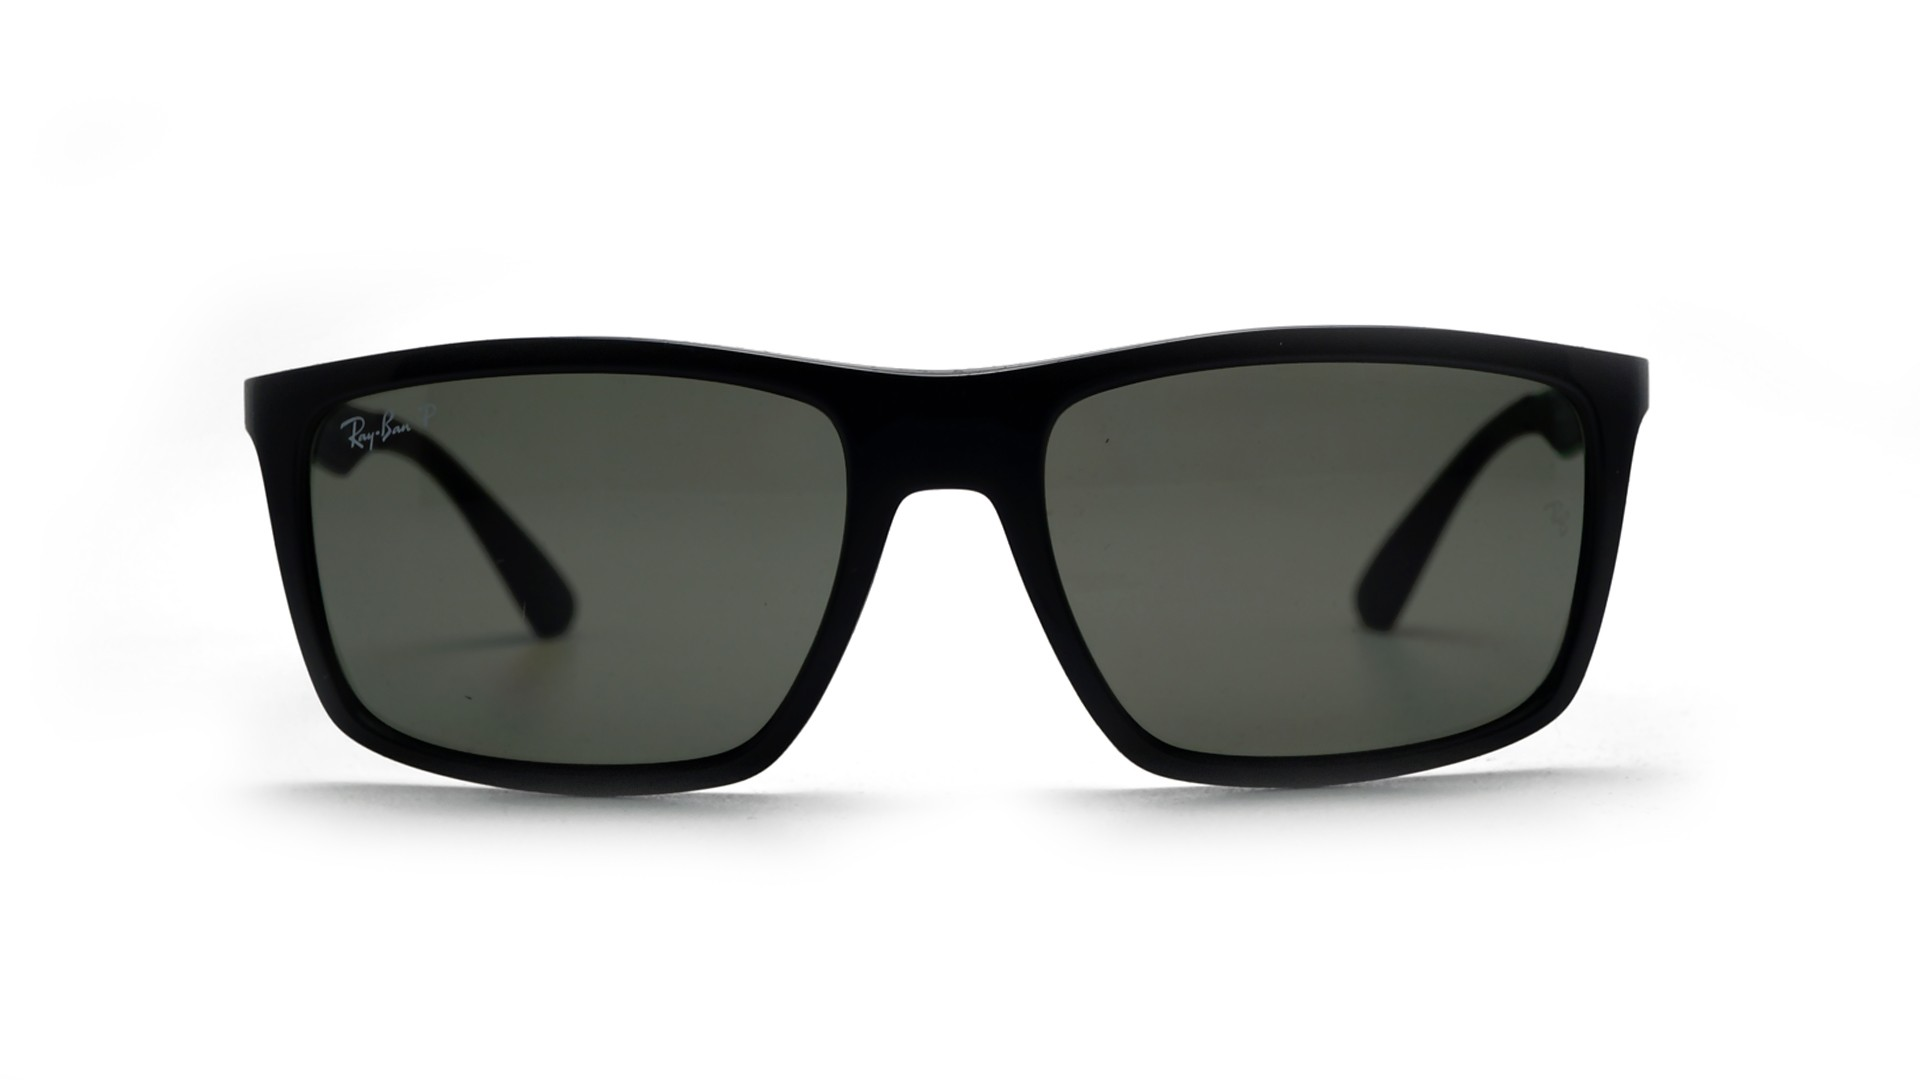 59a2793e04 Ray Ban Rb3183 Replacement Temple Tips « Heritage Malta